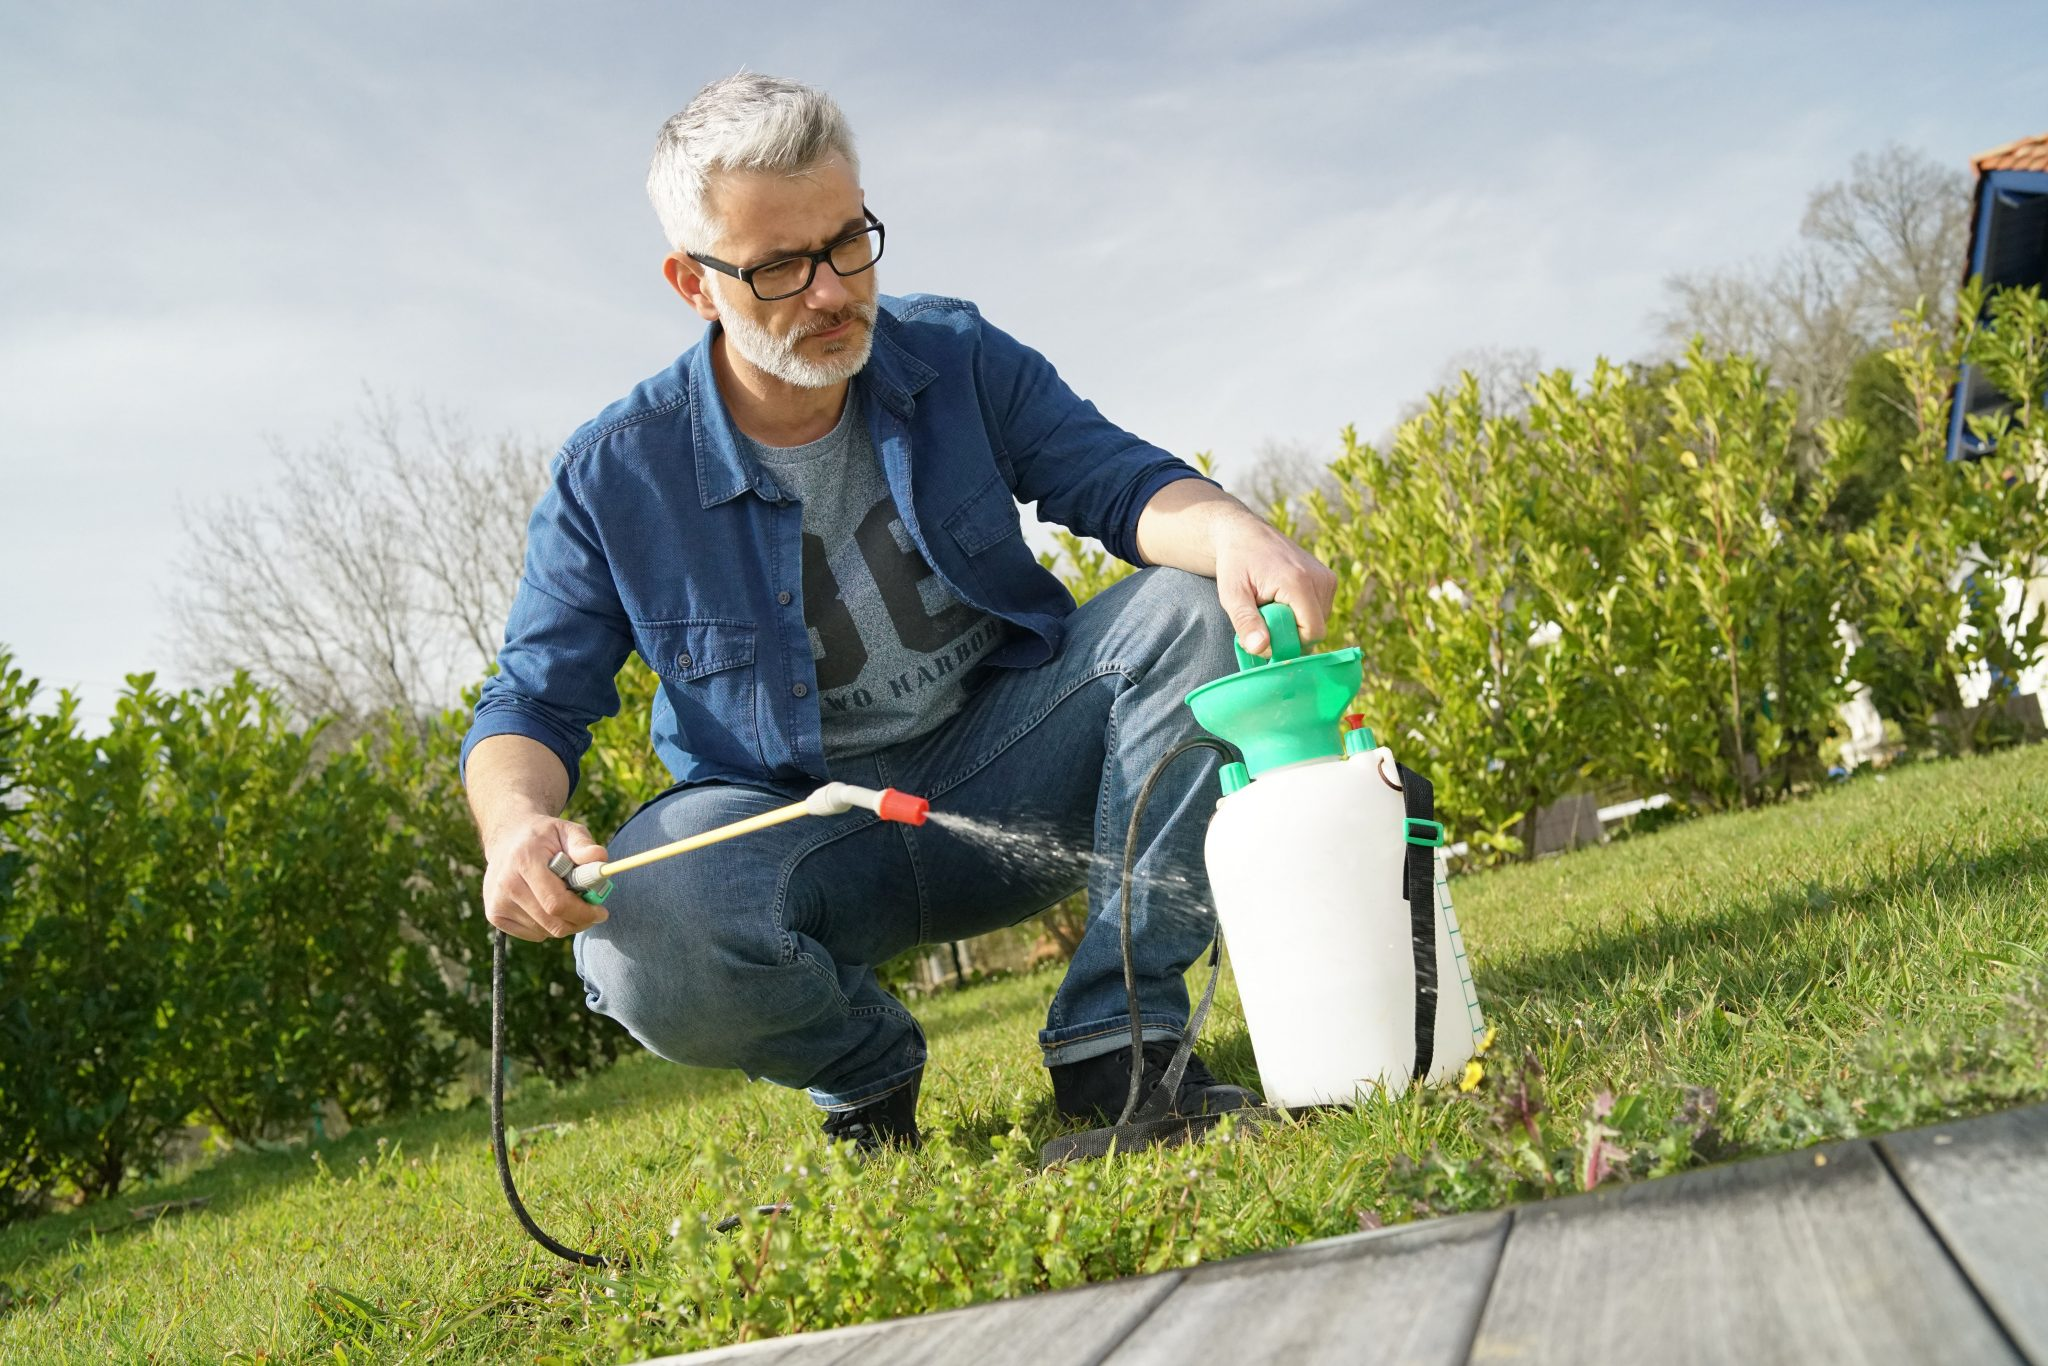 man using a sprayer in his yard.